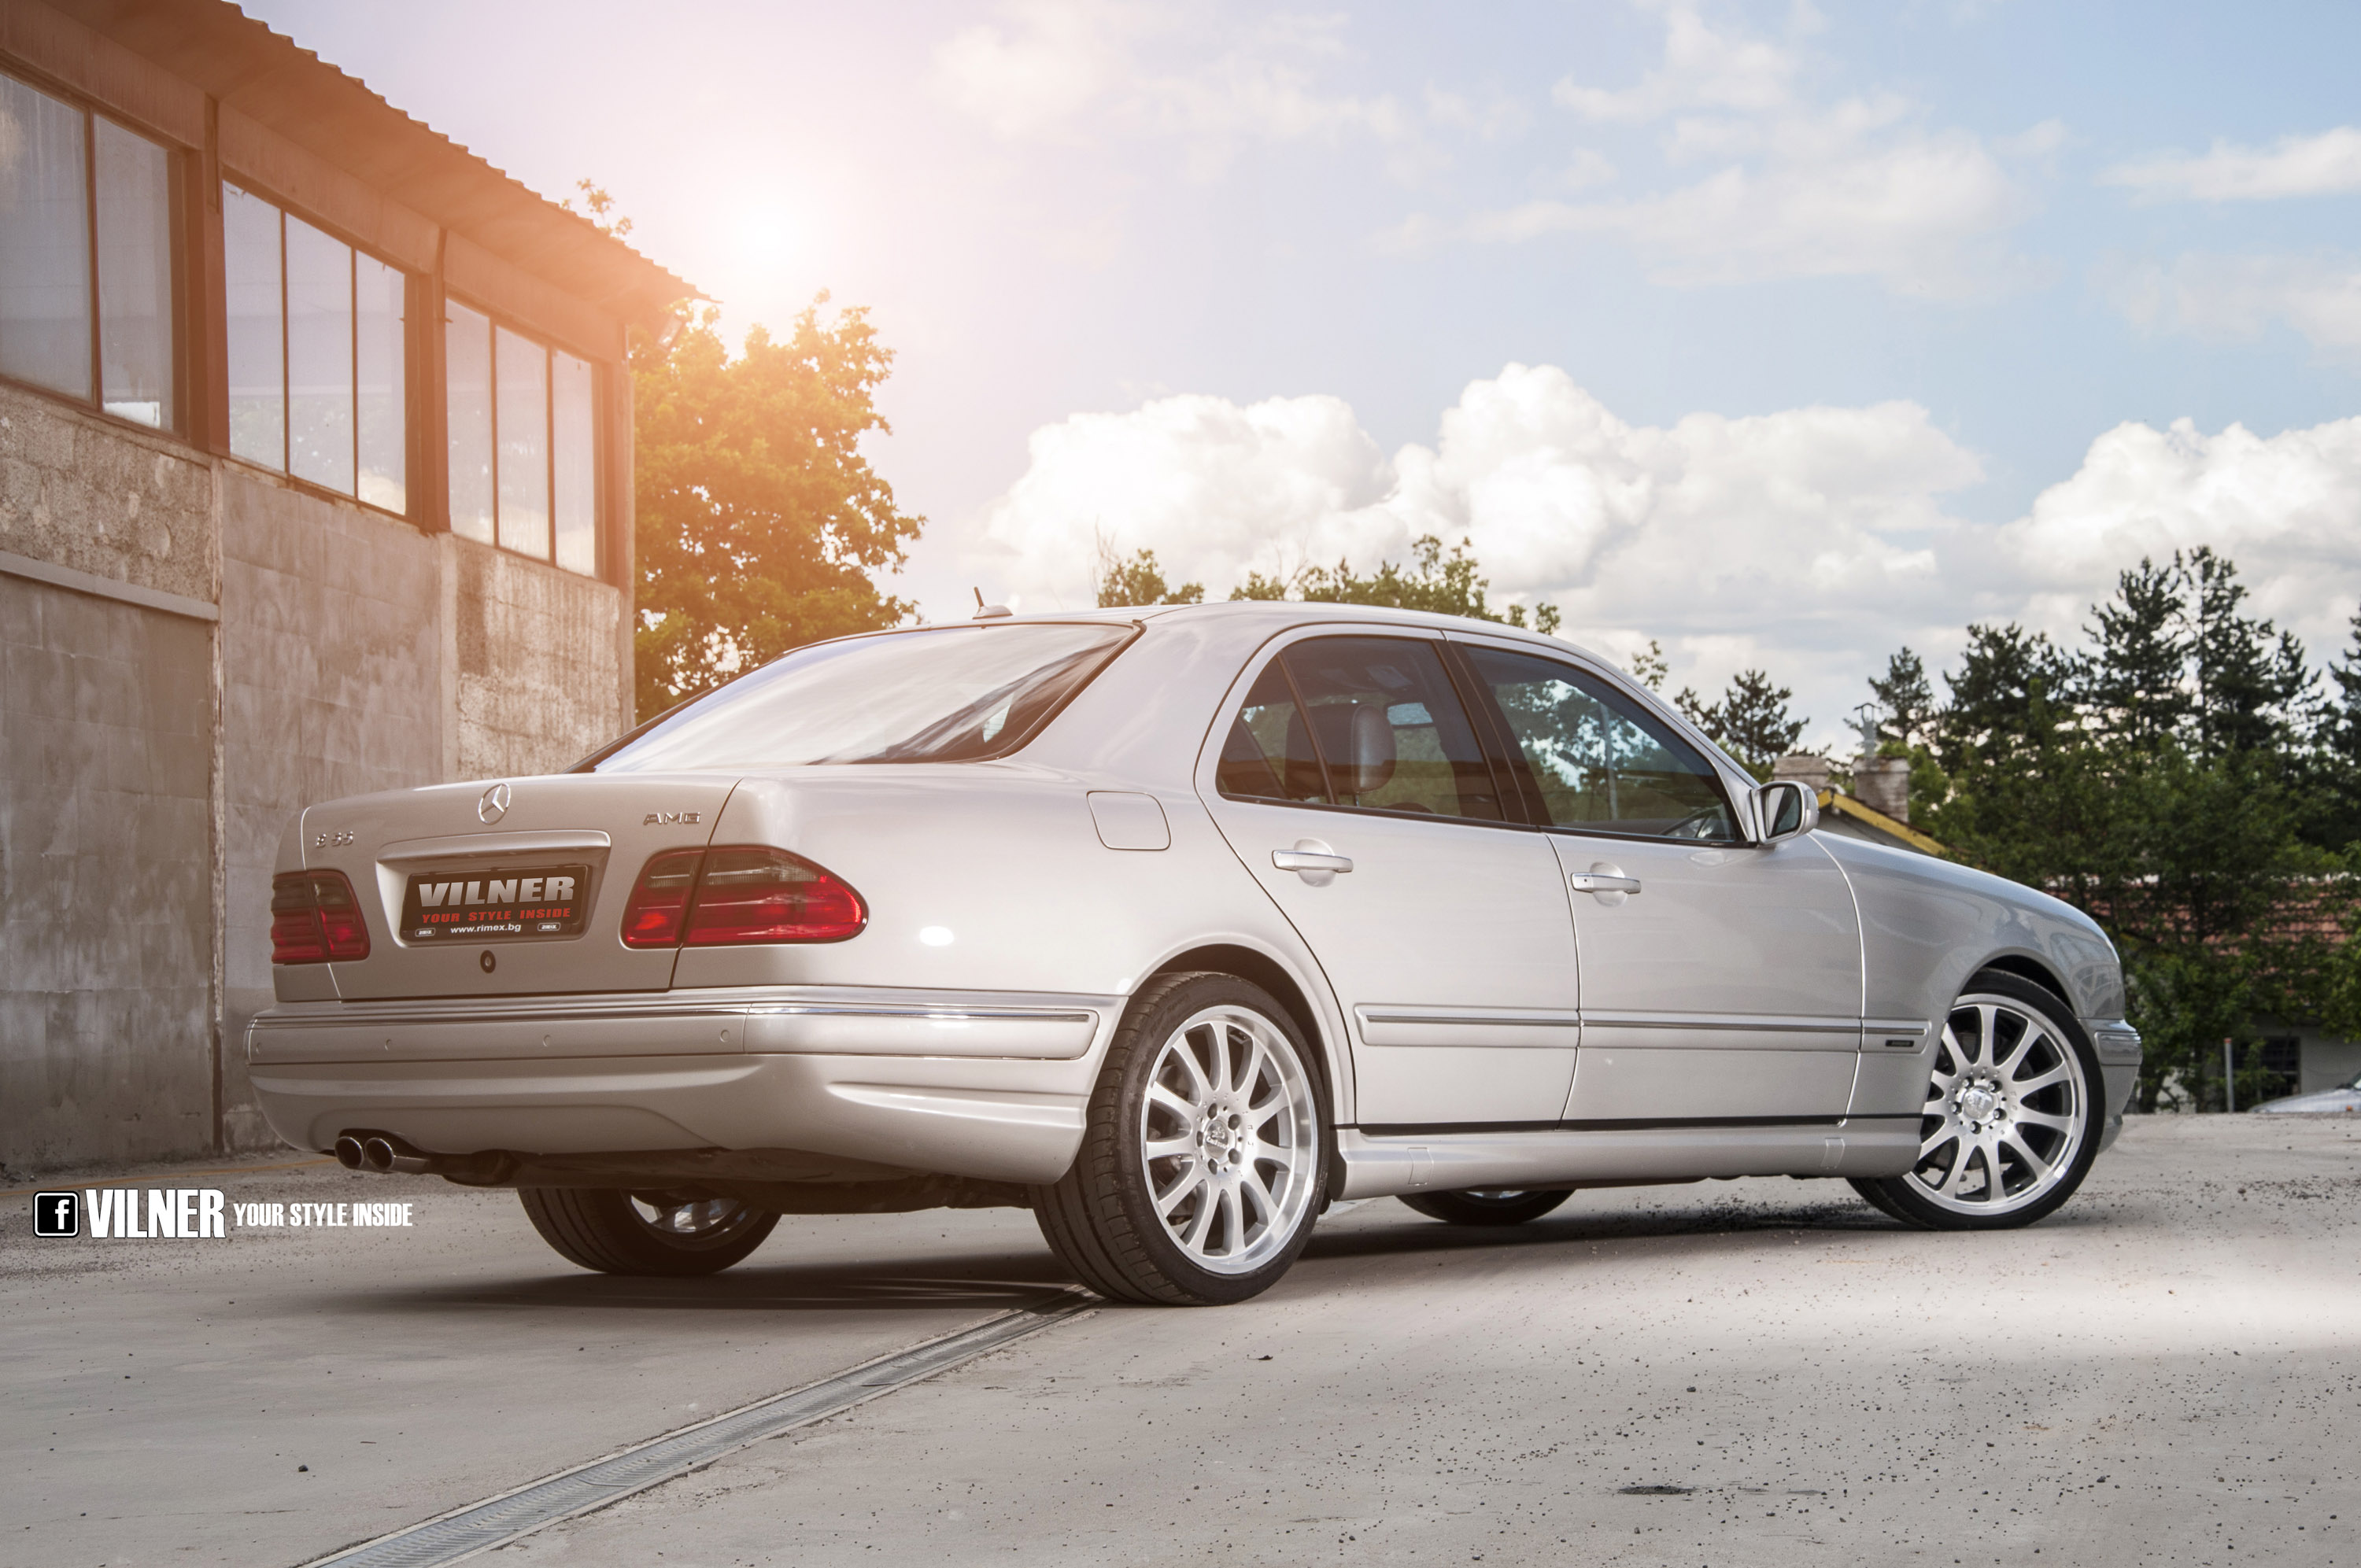 vilner-mercedes-benz-e55-amg-4matic-03 Interesting Info About 2001 E55 Amg with Terrific Images Cars Review